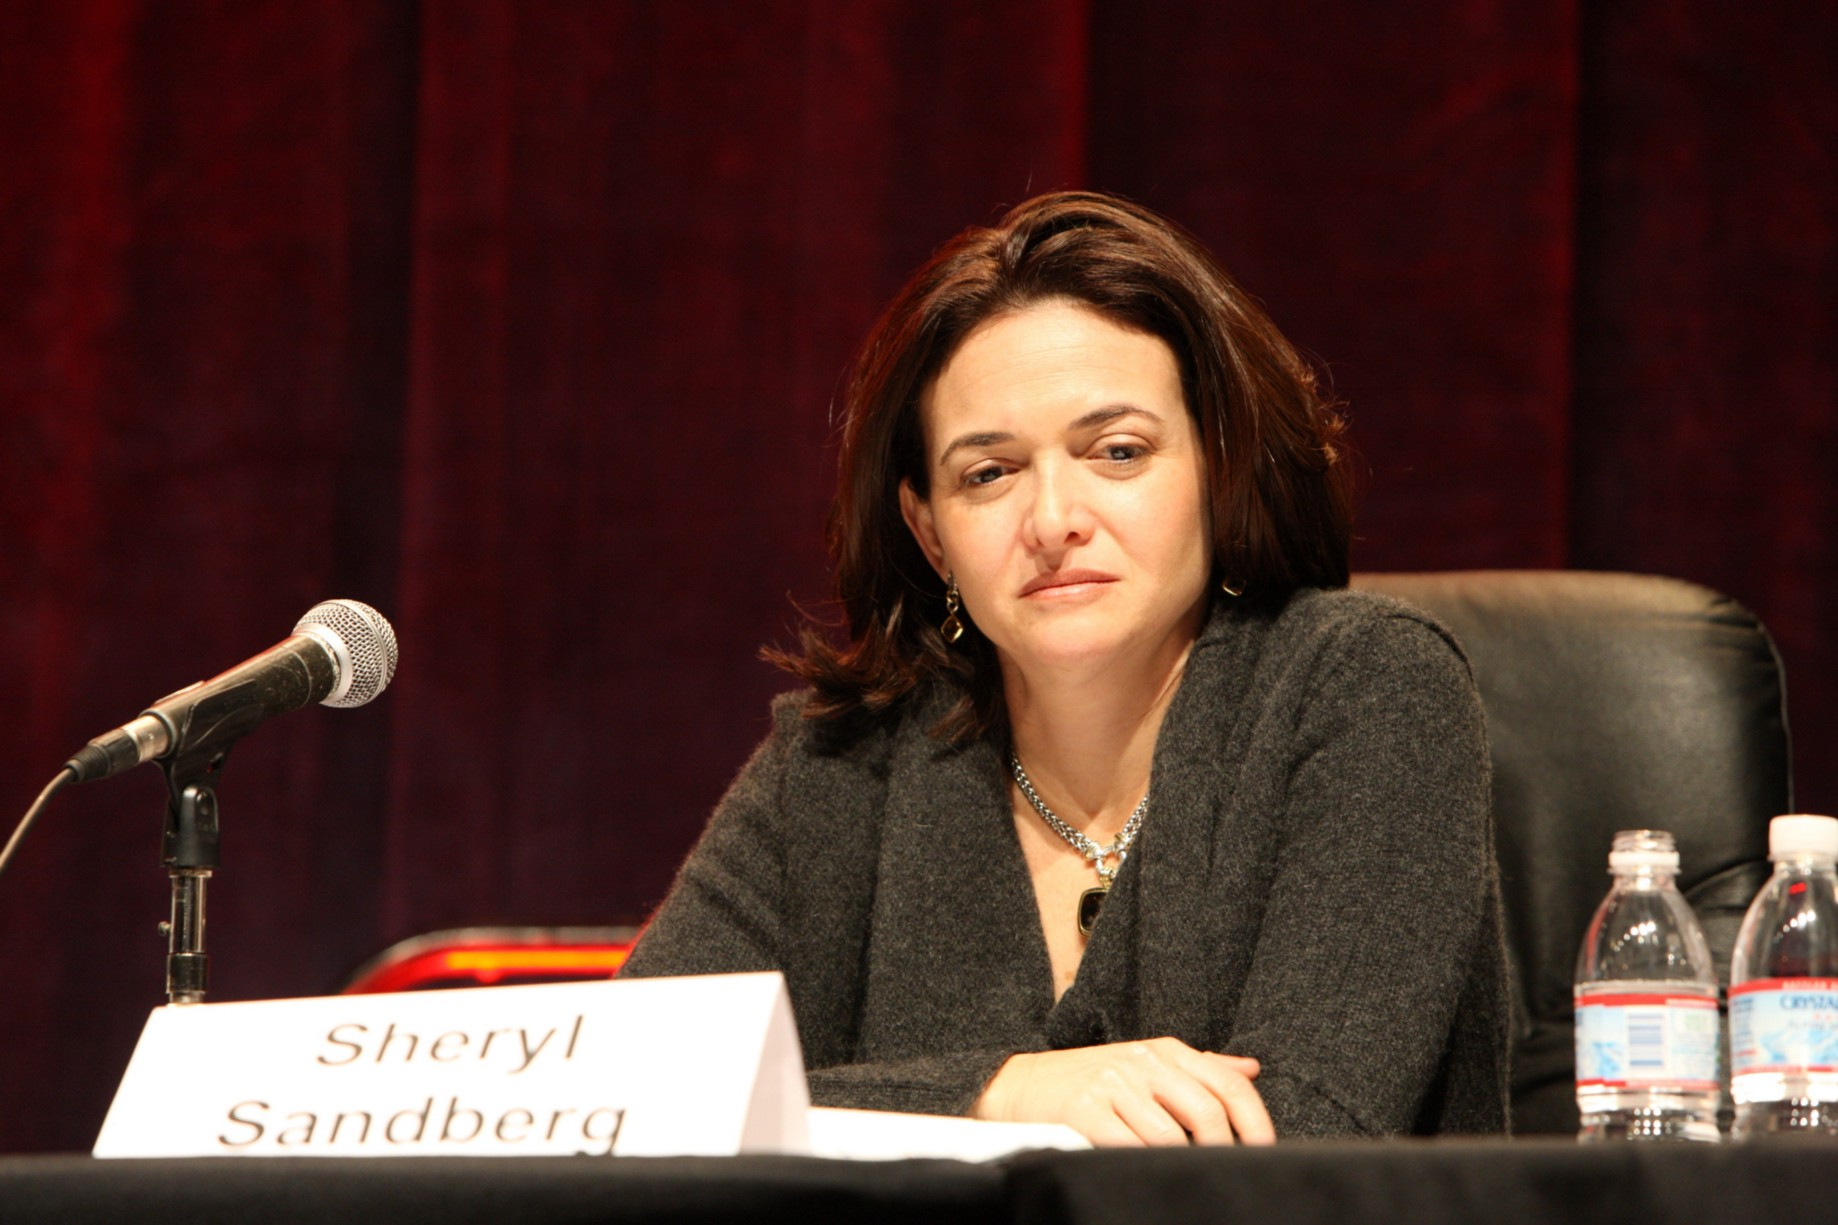 Why Sheryl Sandberg Would Be A Great Role Model For My Young Daughters